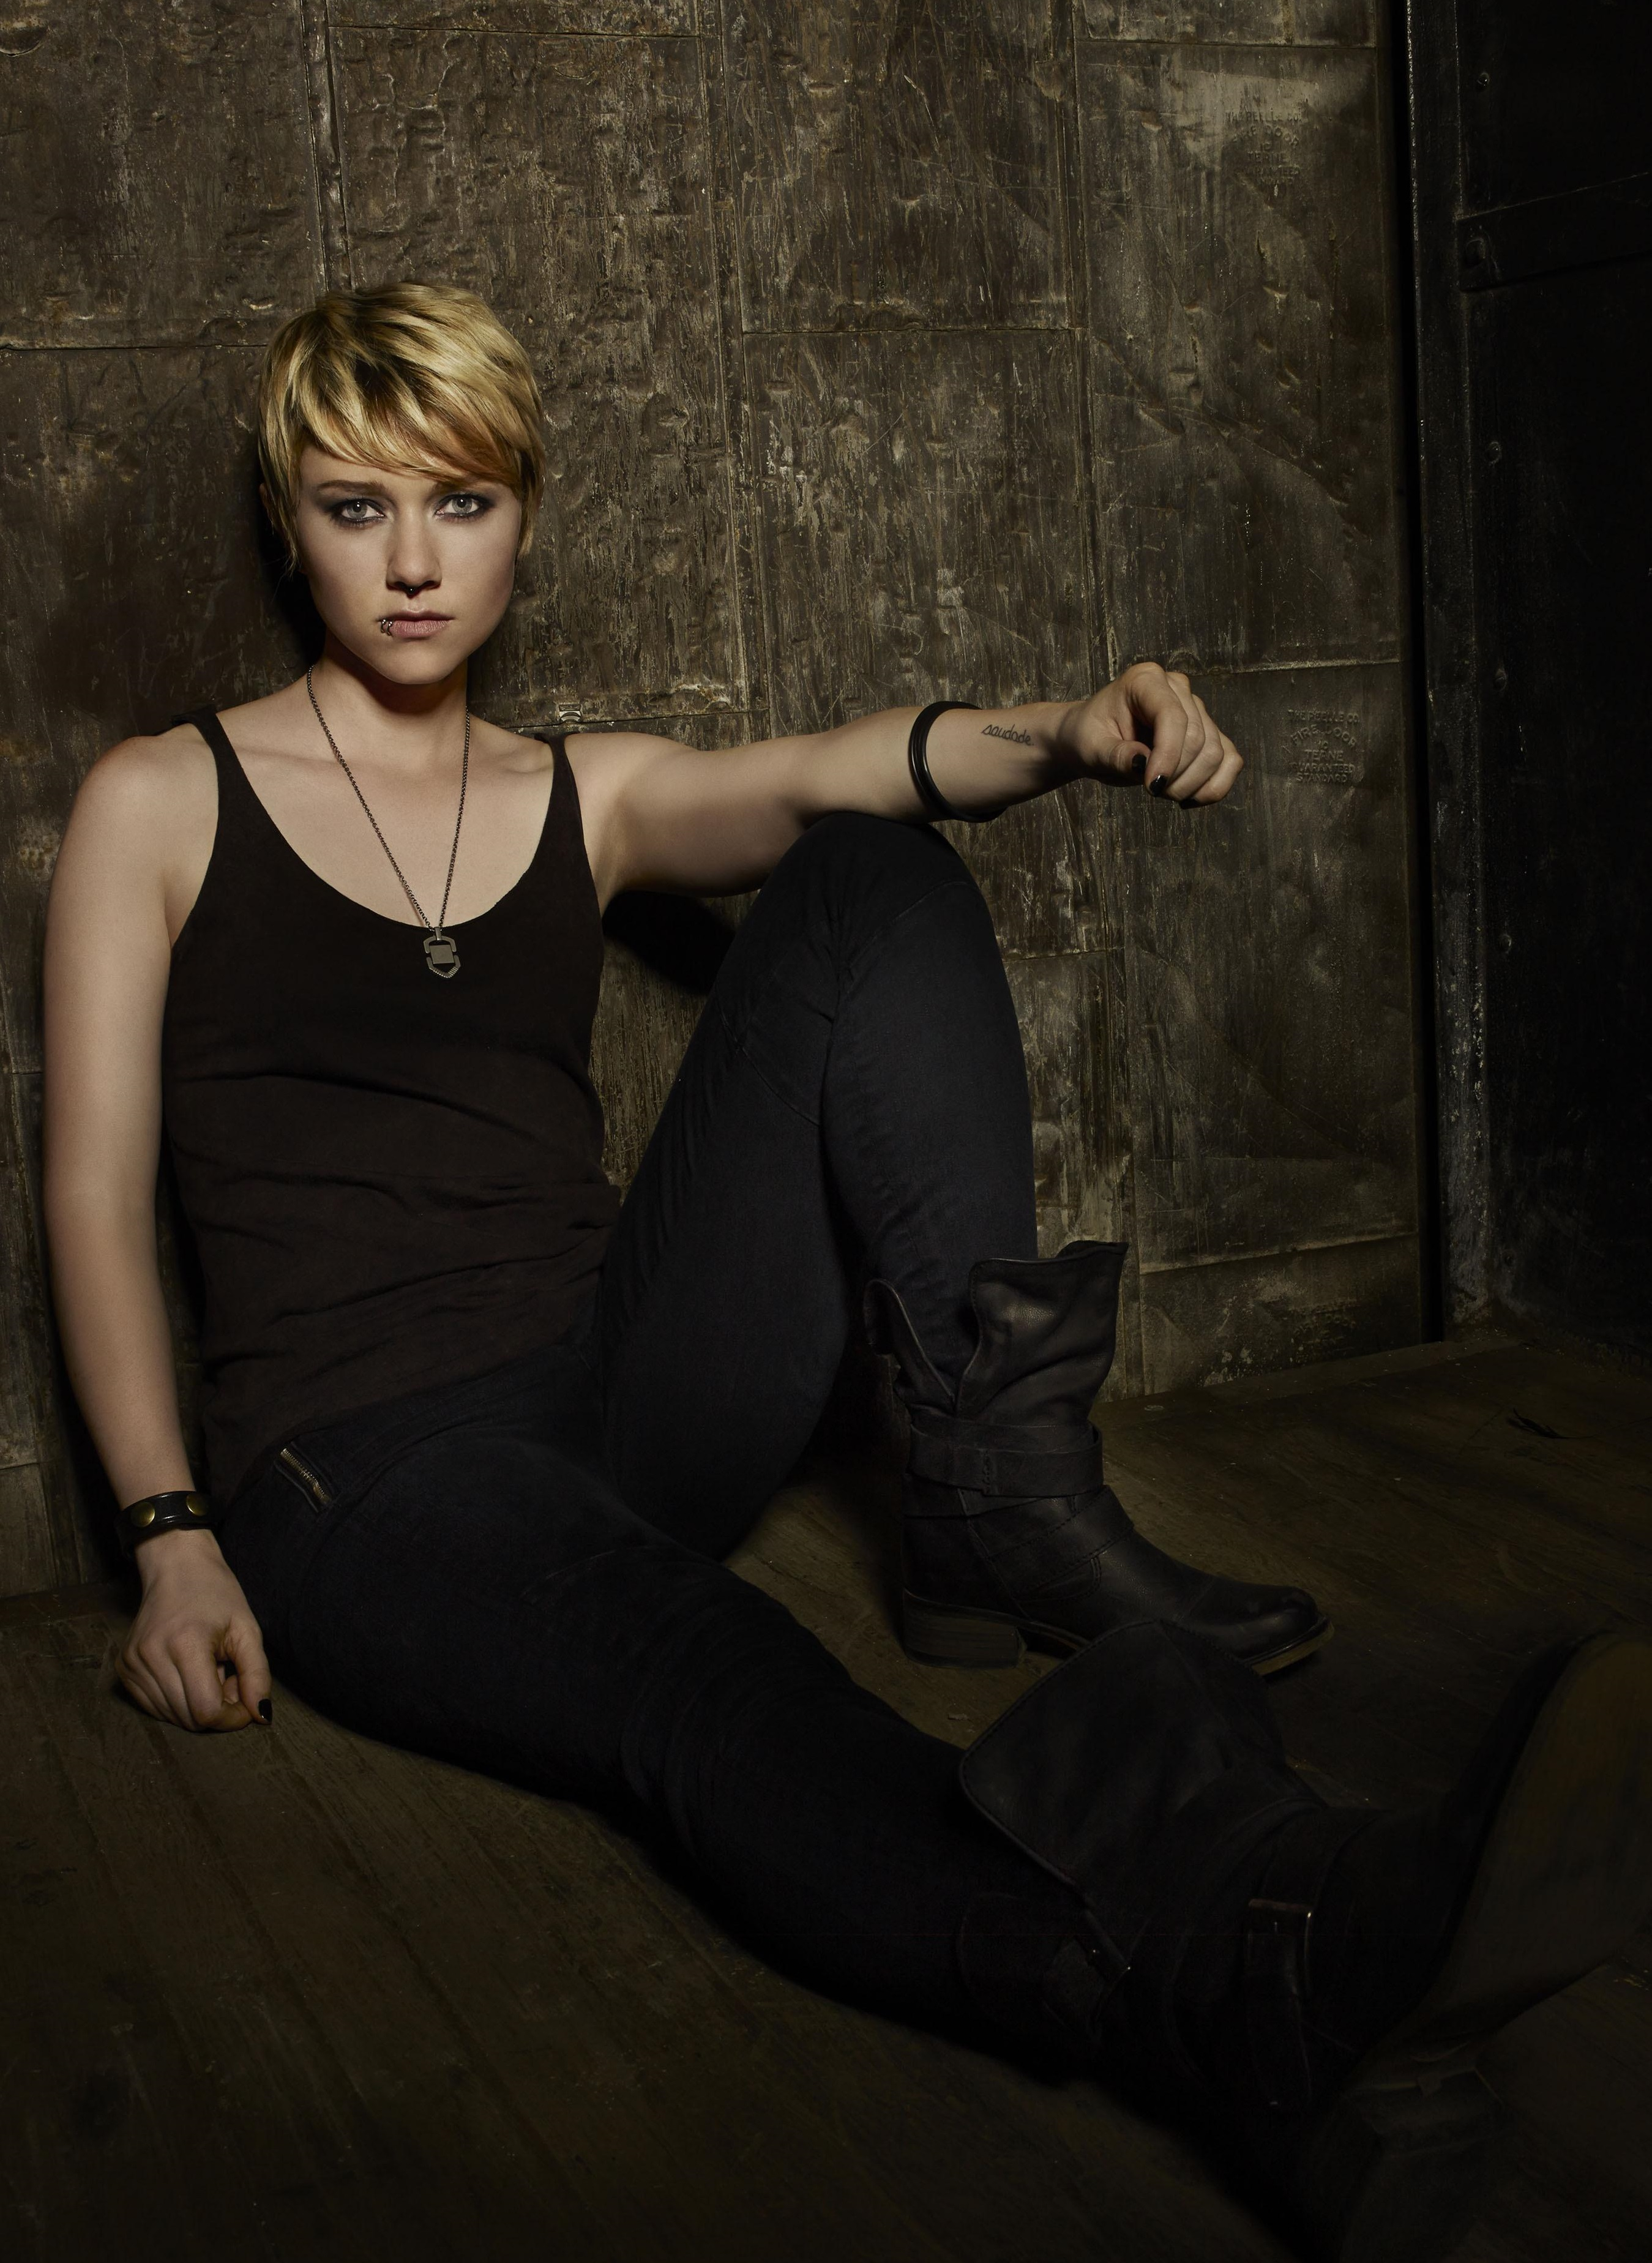 Hacked Valorie Curry nude (58 photos), Cleavage